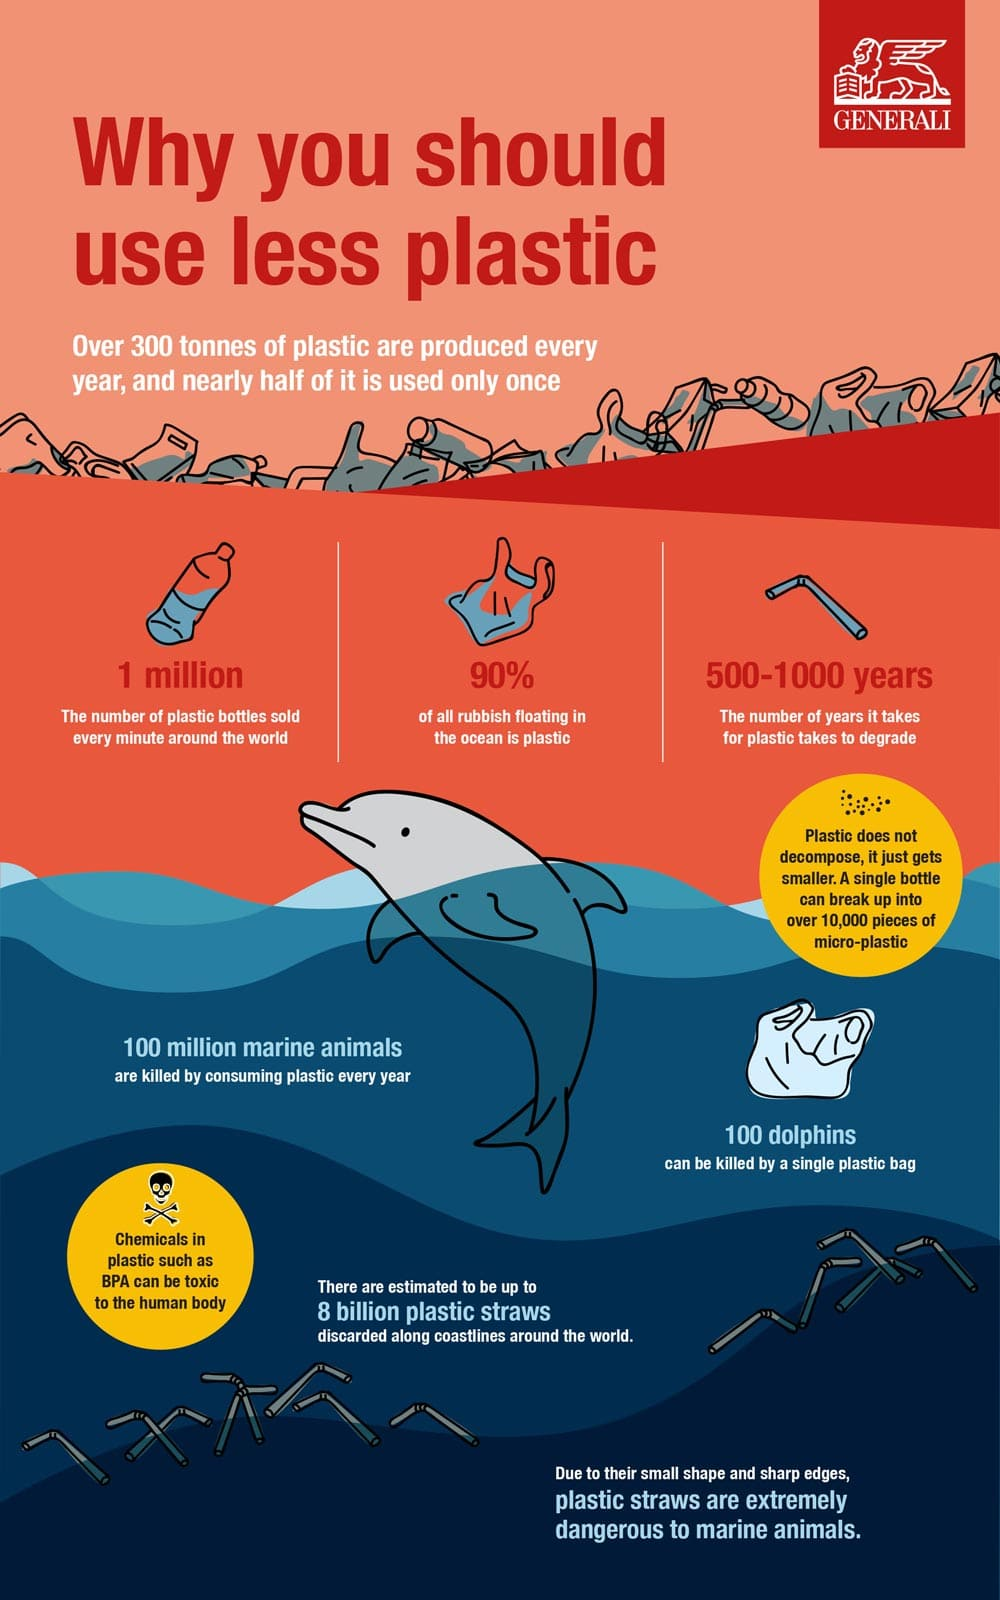 Why You Should Use Less plastic. Over 300 tons of plastic are produced every year and nearly half of it is used only once. 1 million plastic bottles sold every minute around the world. 90% of all rubbish floating in the ocean is plastic. It takes 500-1000 years for plastic to degrade, but never decomposes.. 100 million marine animals are killed every year by consuming plastic.  100 dolphins can be killed by a single plastic bag.